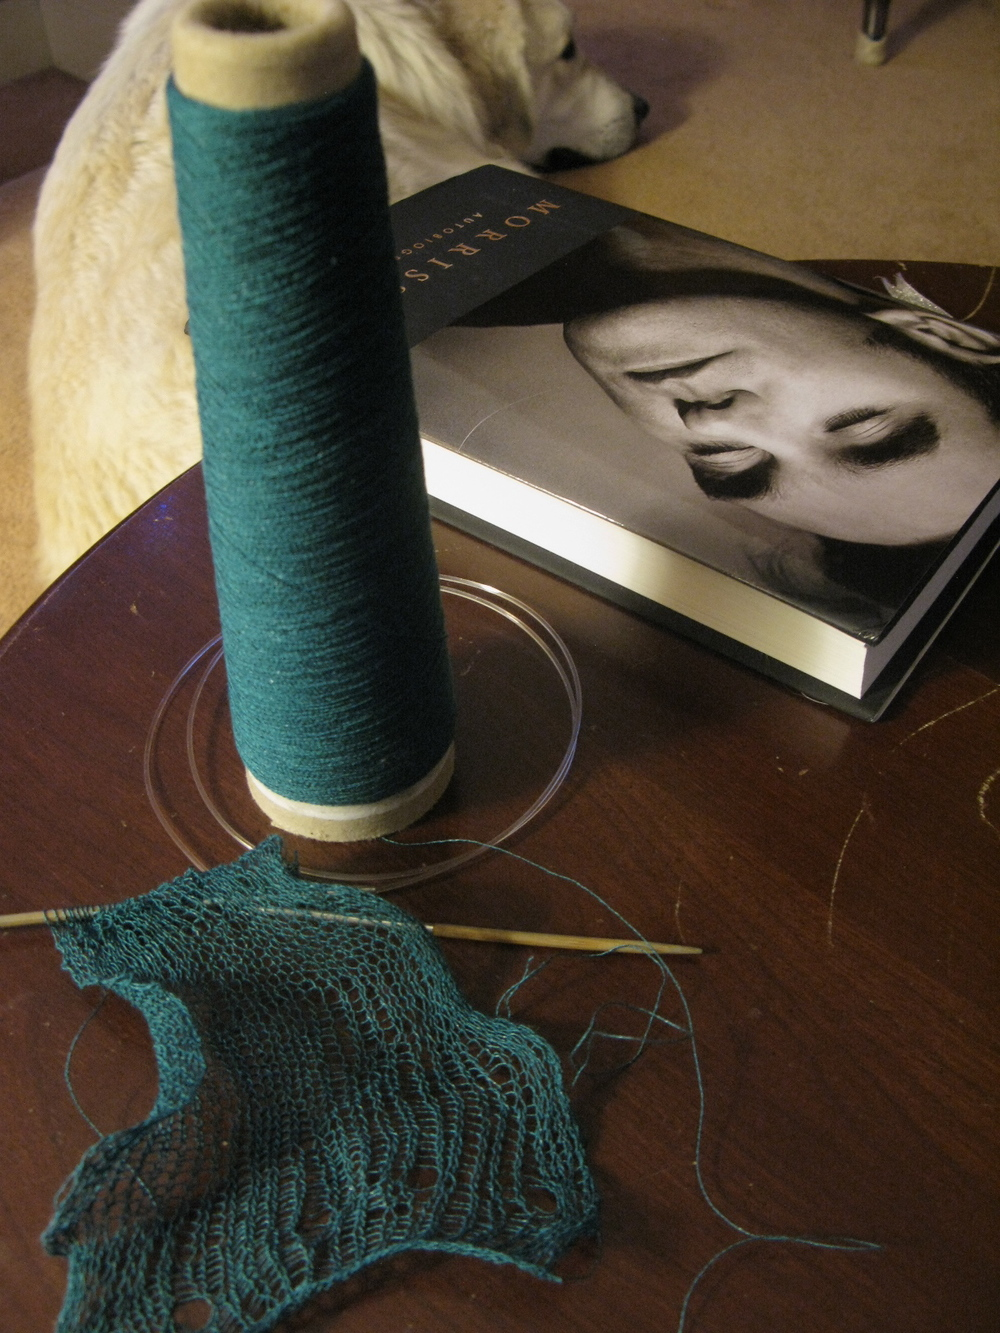 The beginning of the drop stitch scarf plus and early Christmas present from the Jor Jor--Morrissey's autobiography. Both are so beautiful :)